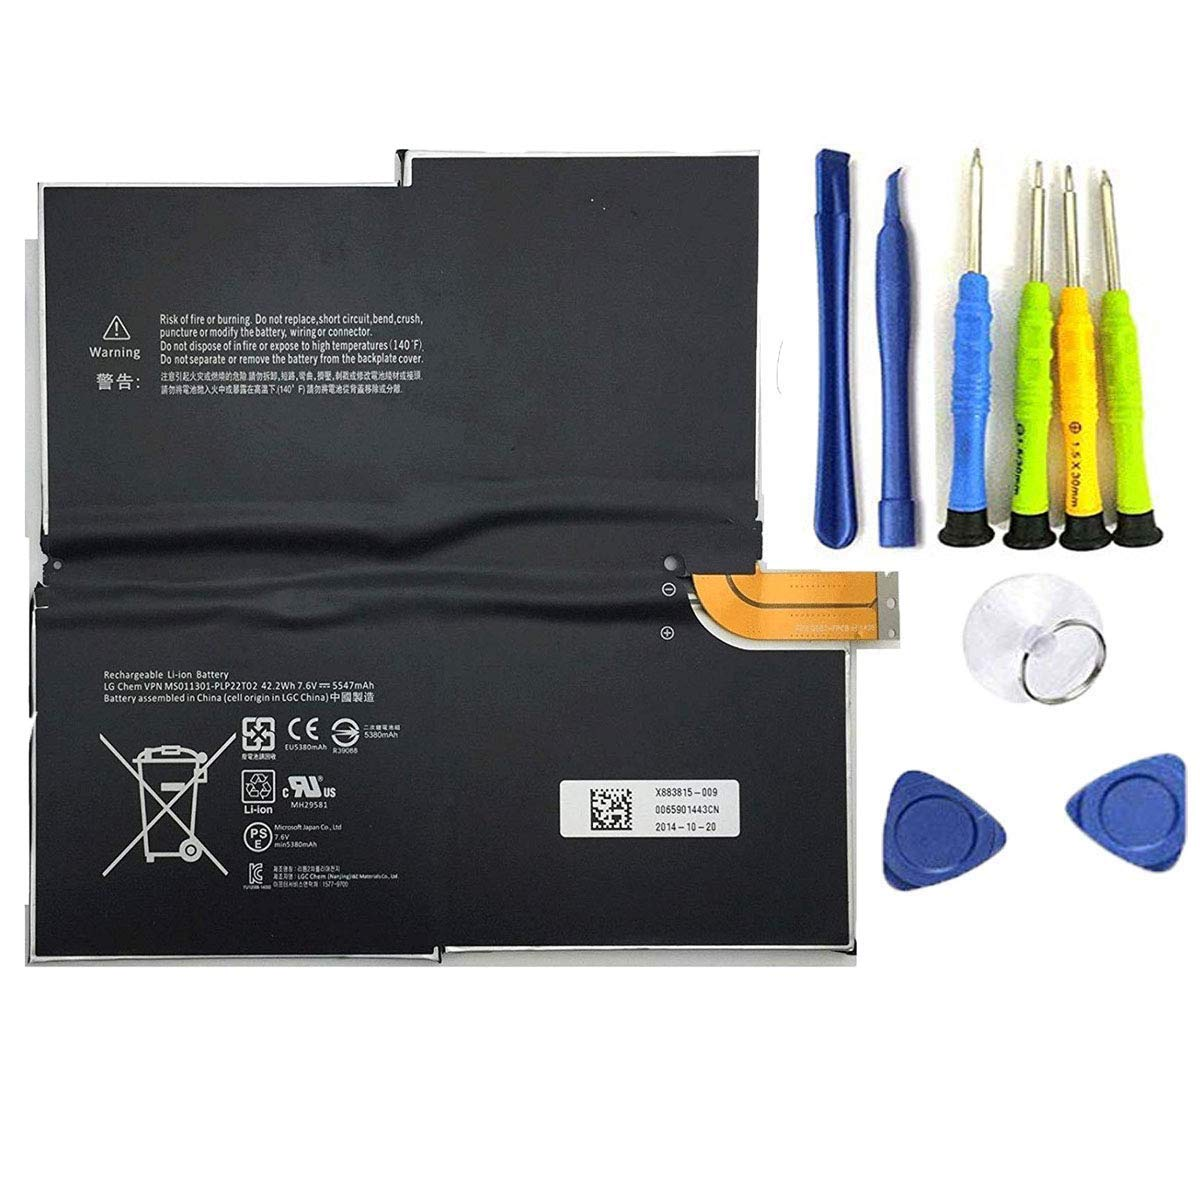 Bateria : Microsoft G3hta005h Surface Pro 3 1631 Windows